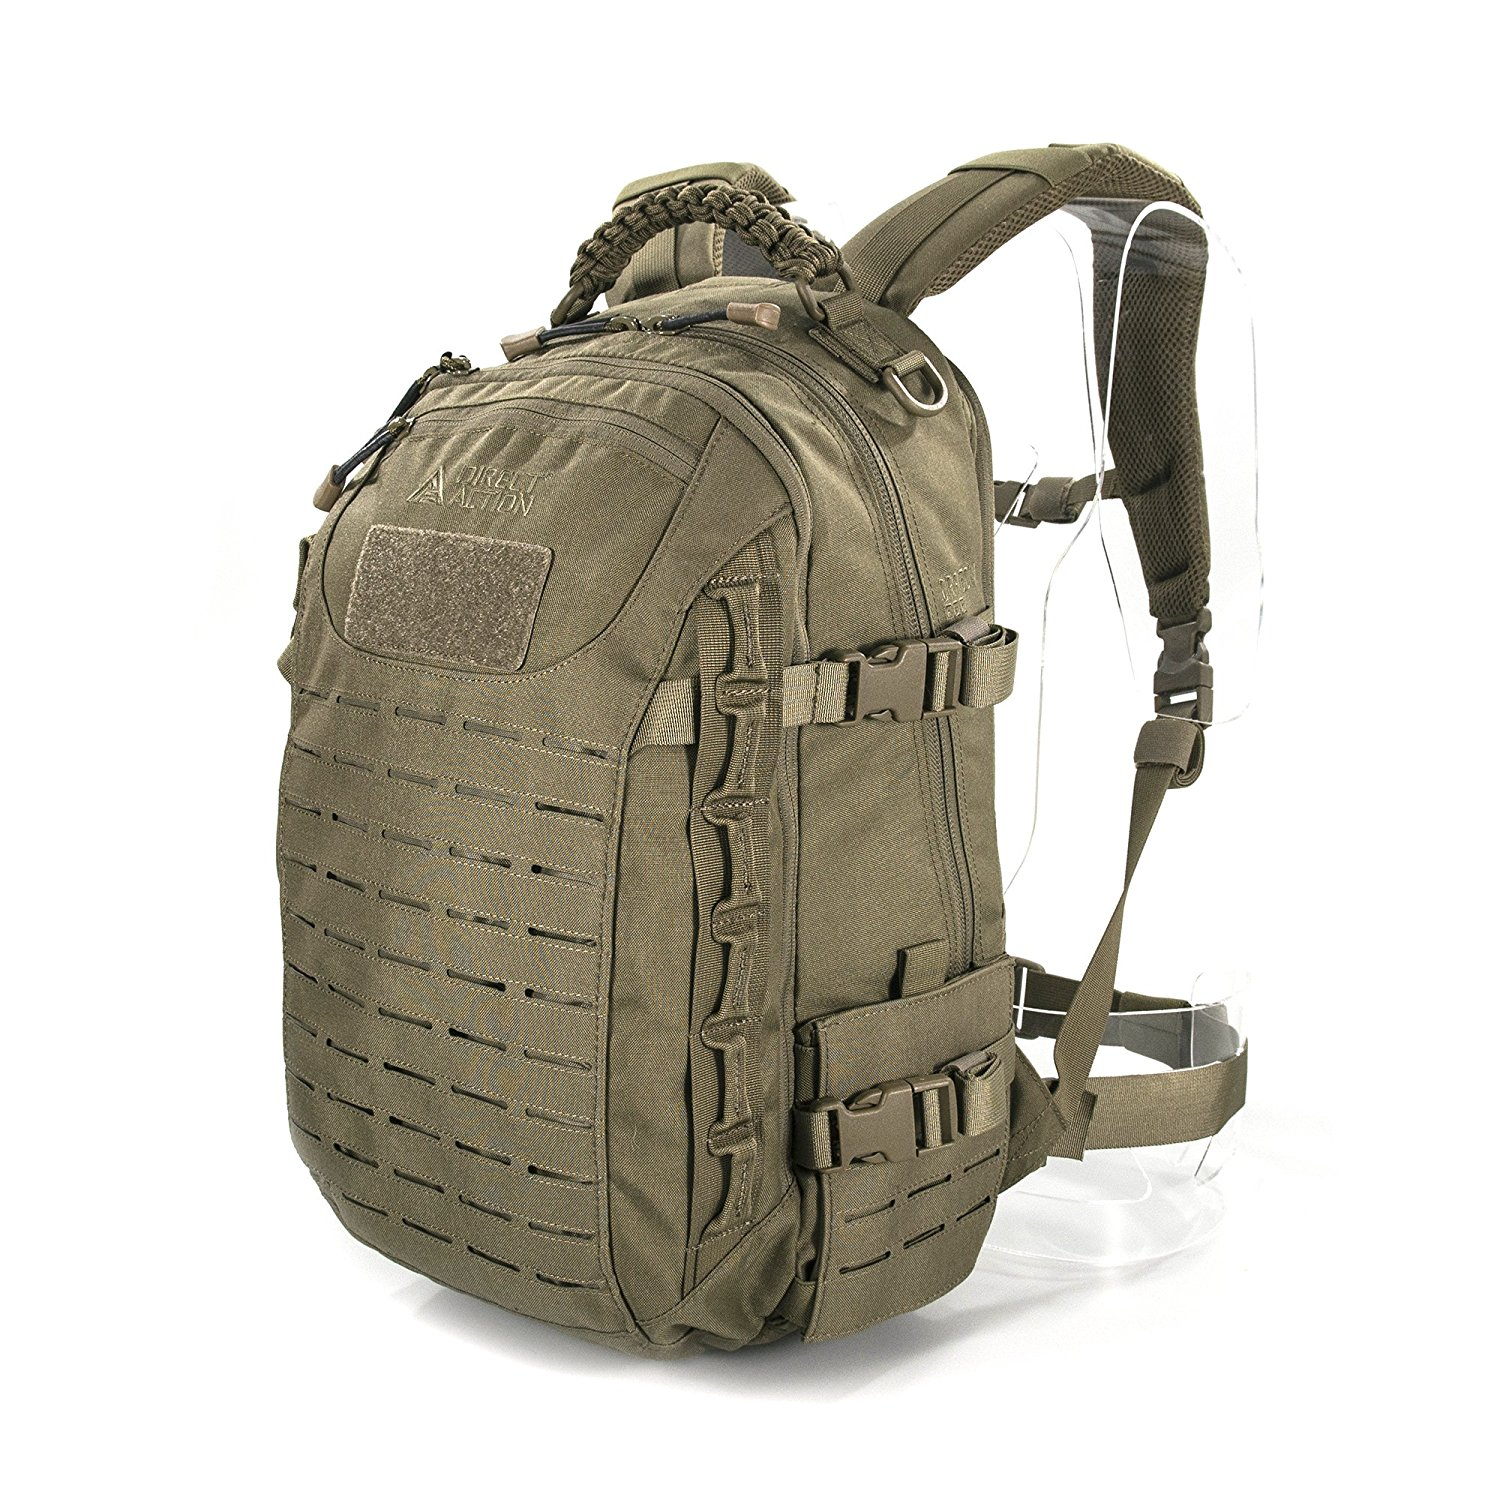 With our sale tactical gear, get all your essentials without breaking the bank. We feature some of the top brands at discounted prices in our clearance selection. With brands such as Adidas, RCVA, Oakley, Helly Hansen, and more, you can rest assured every option features the standard levels of quality you expect when shopping with us.